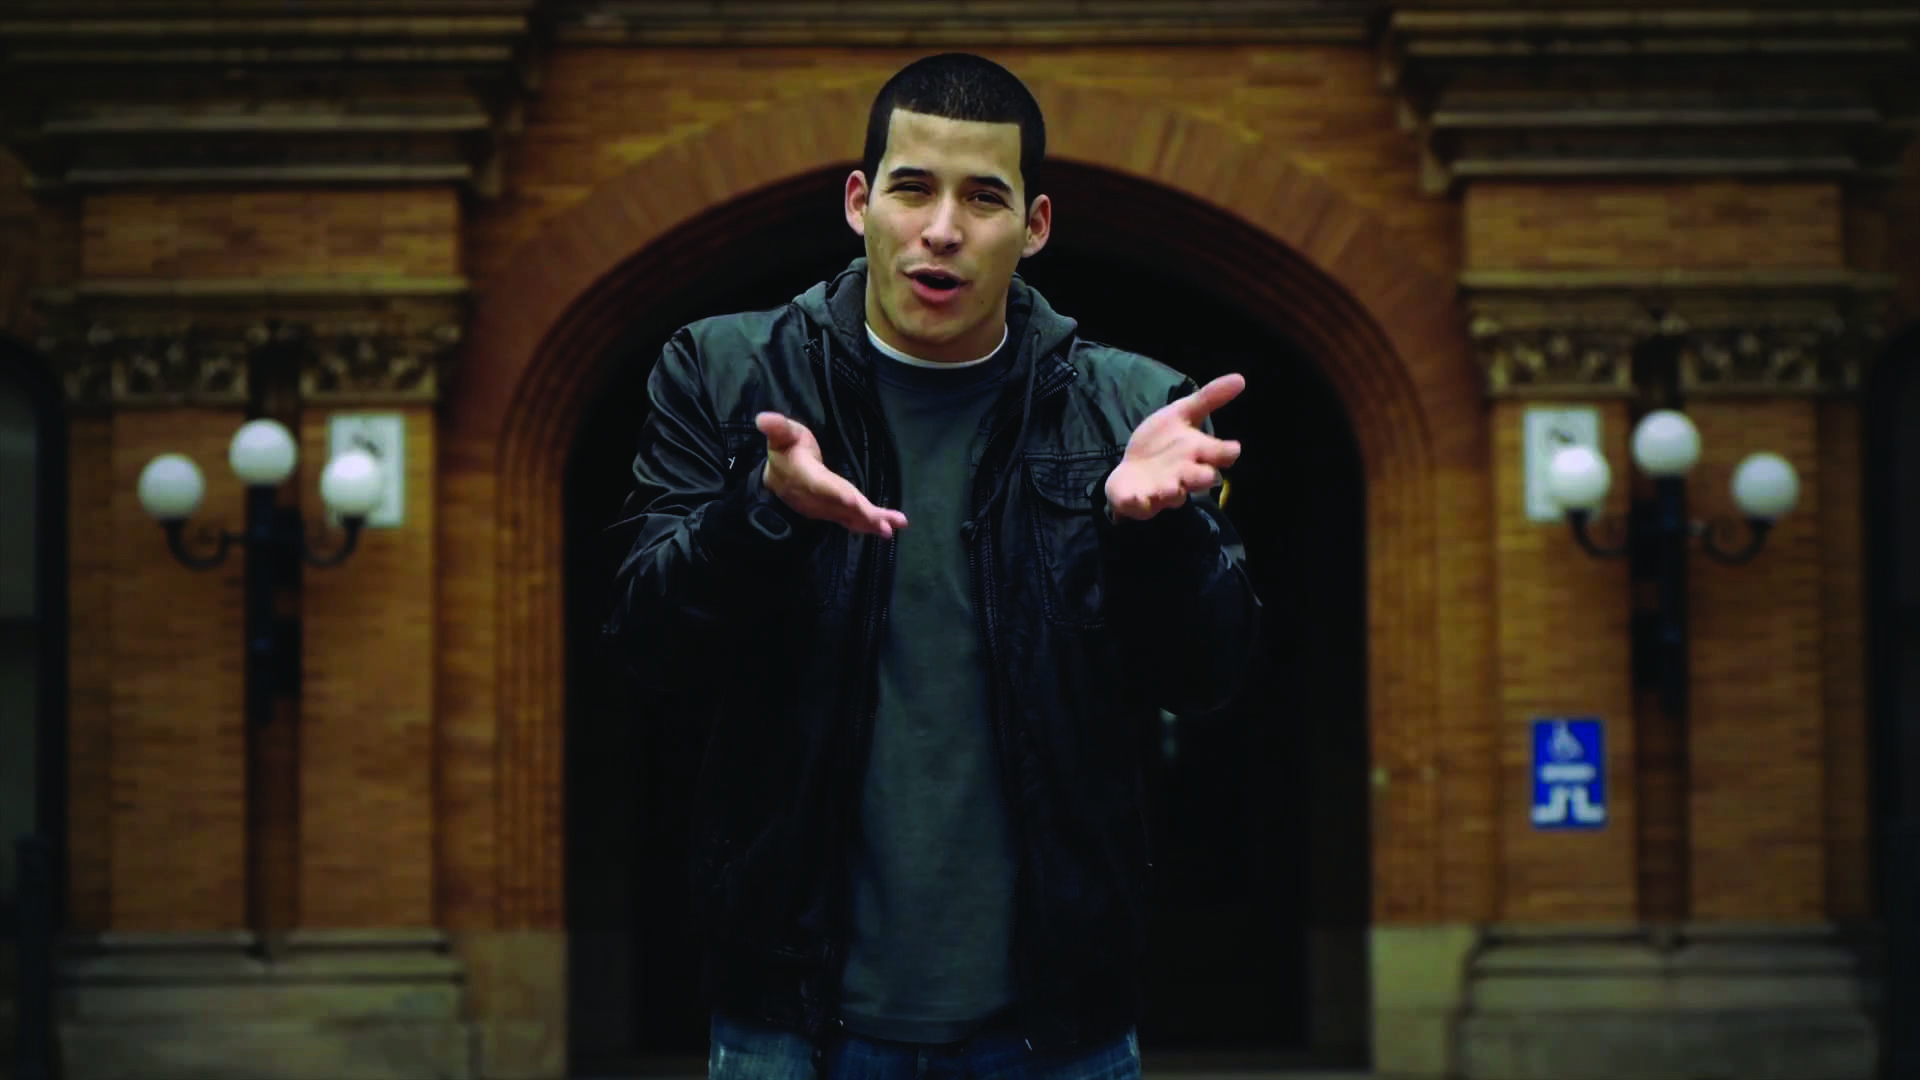 YouTube poet Jefferson Bethke favors faith over religion. (Courtesy of BBAL1989/YouTube)